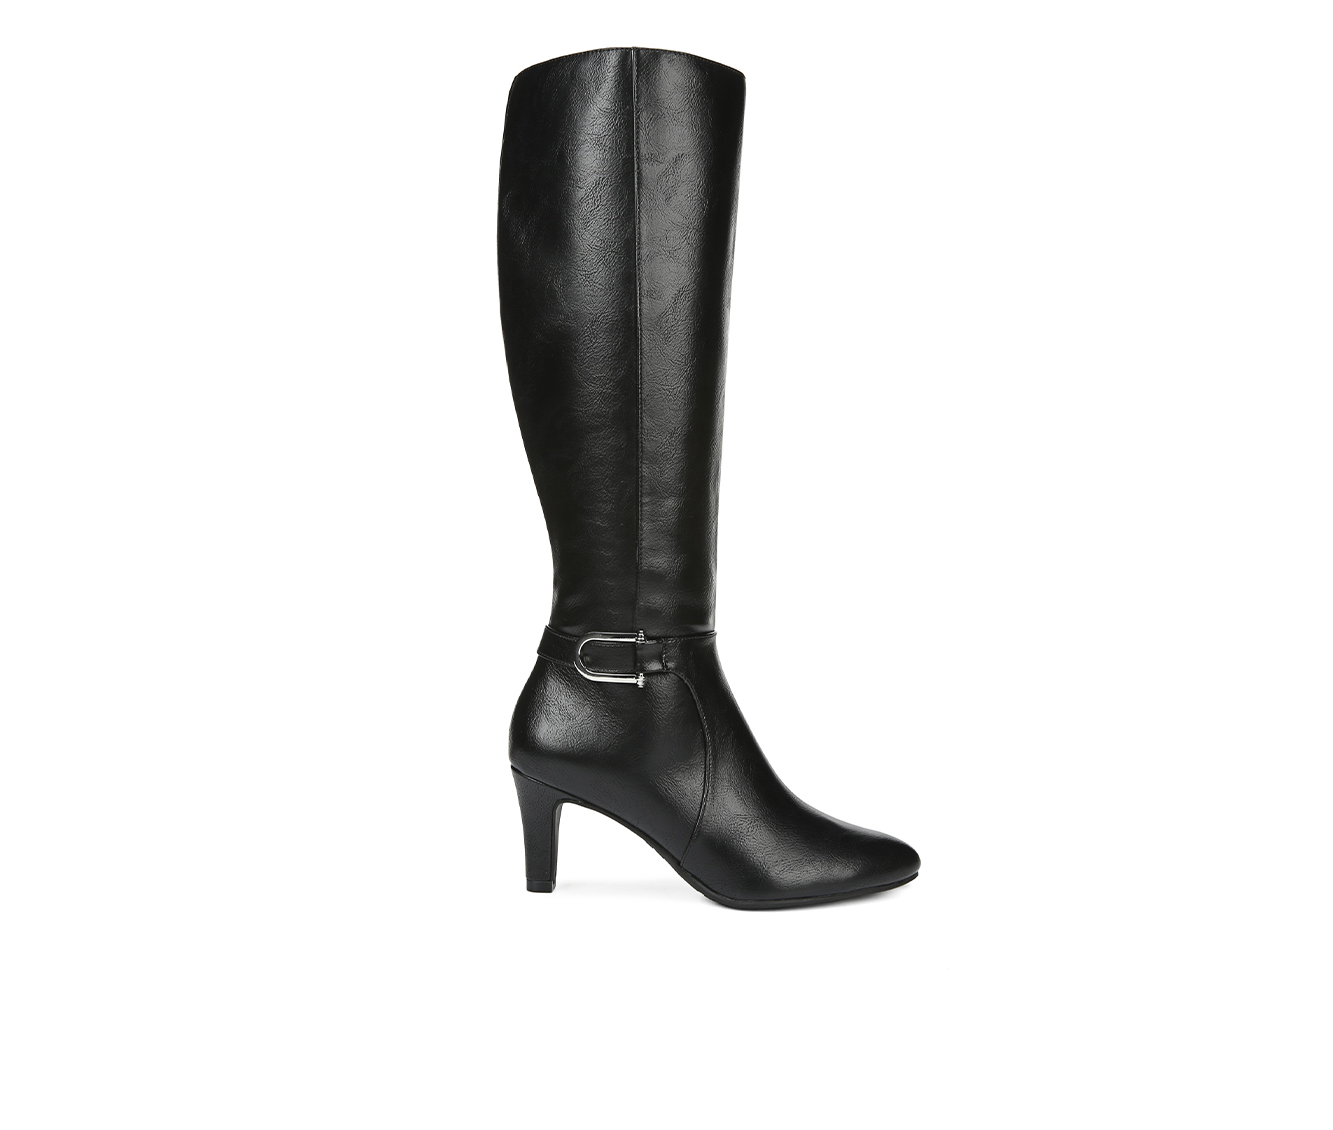 LifeStride Galina Women's Boots (Black - Faux Leather)